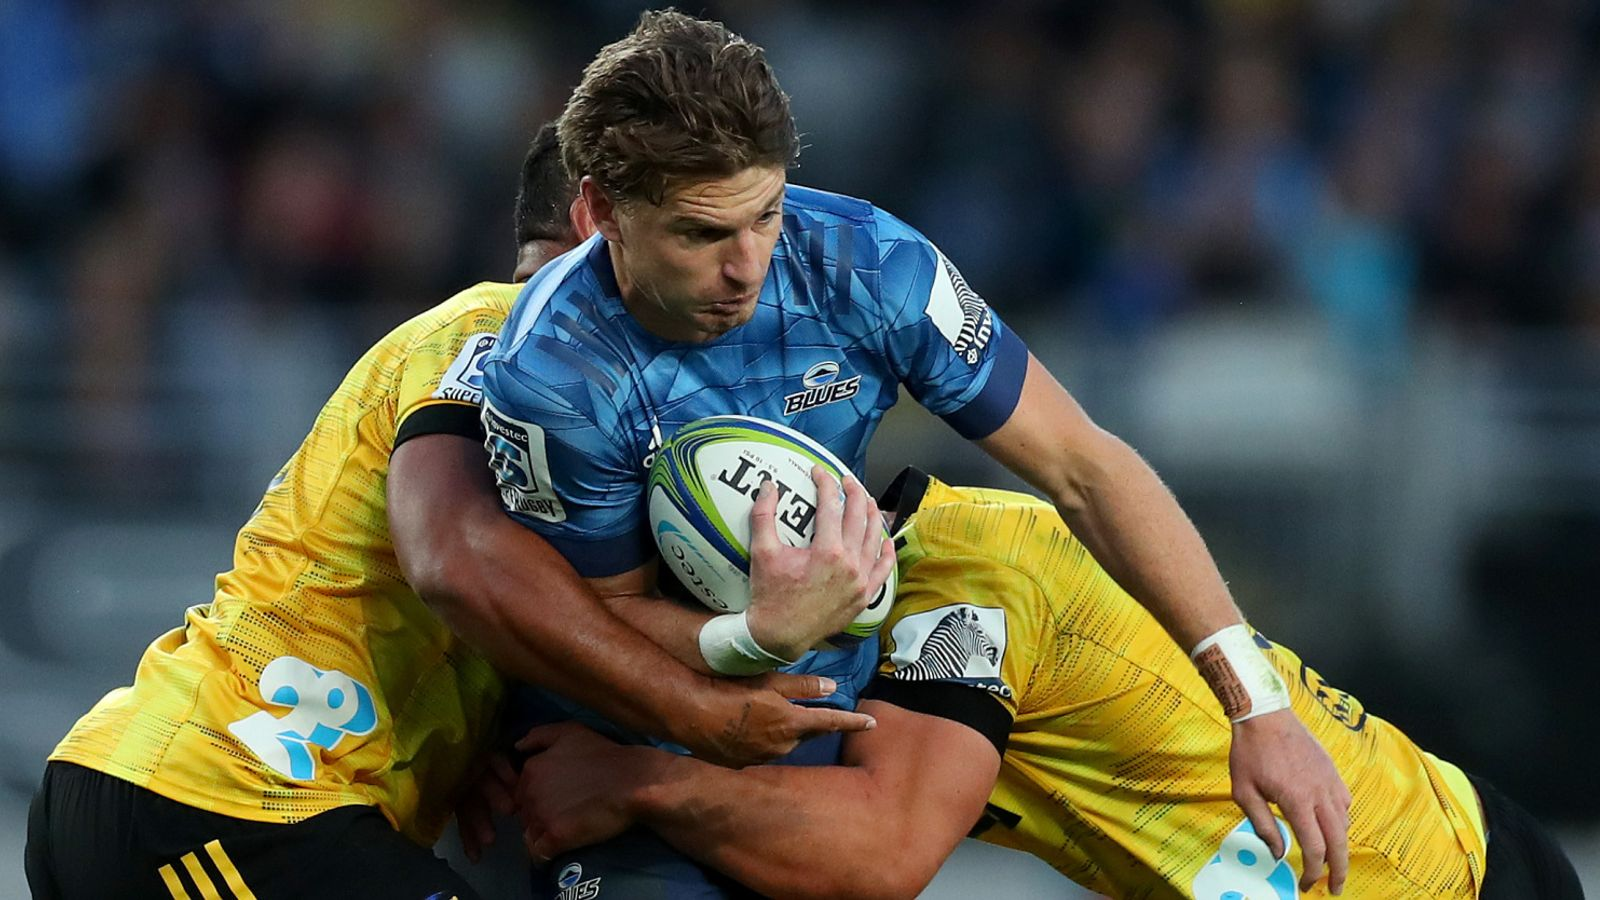 Blues introduce Barrett to 43,000 with impressive Super Rugby win